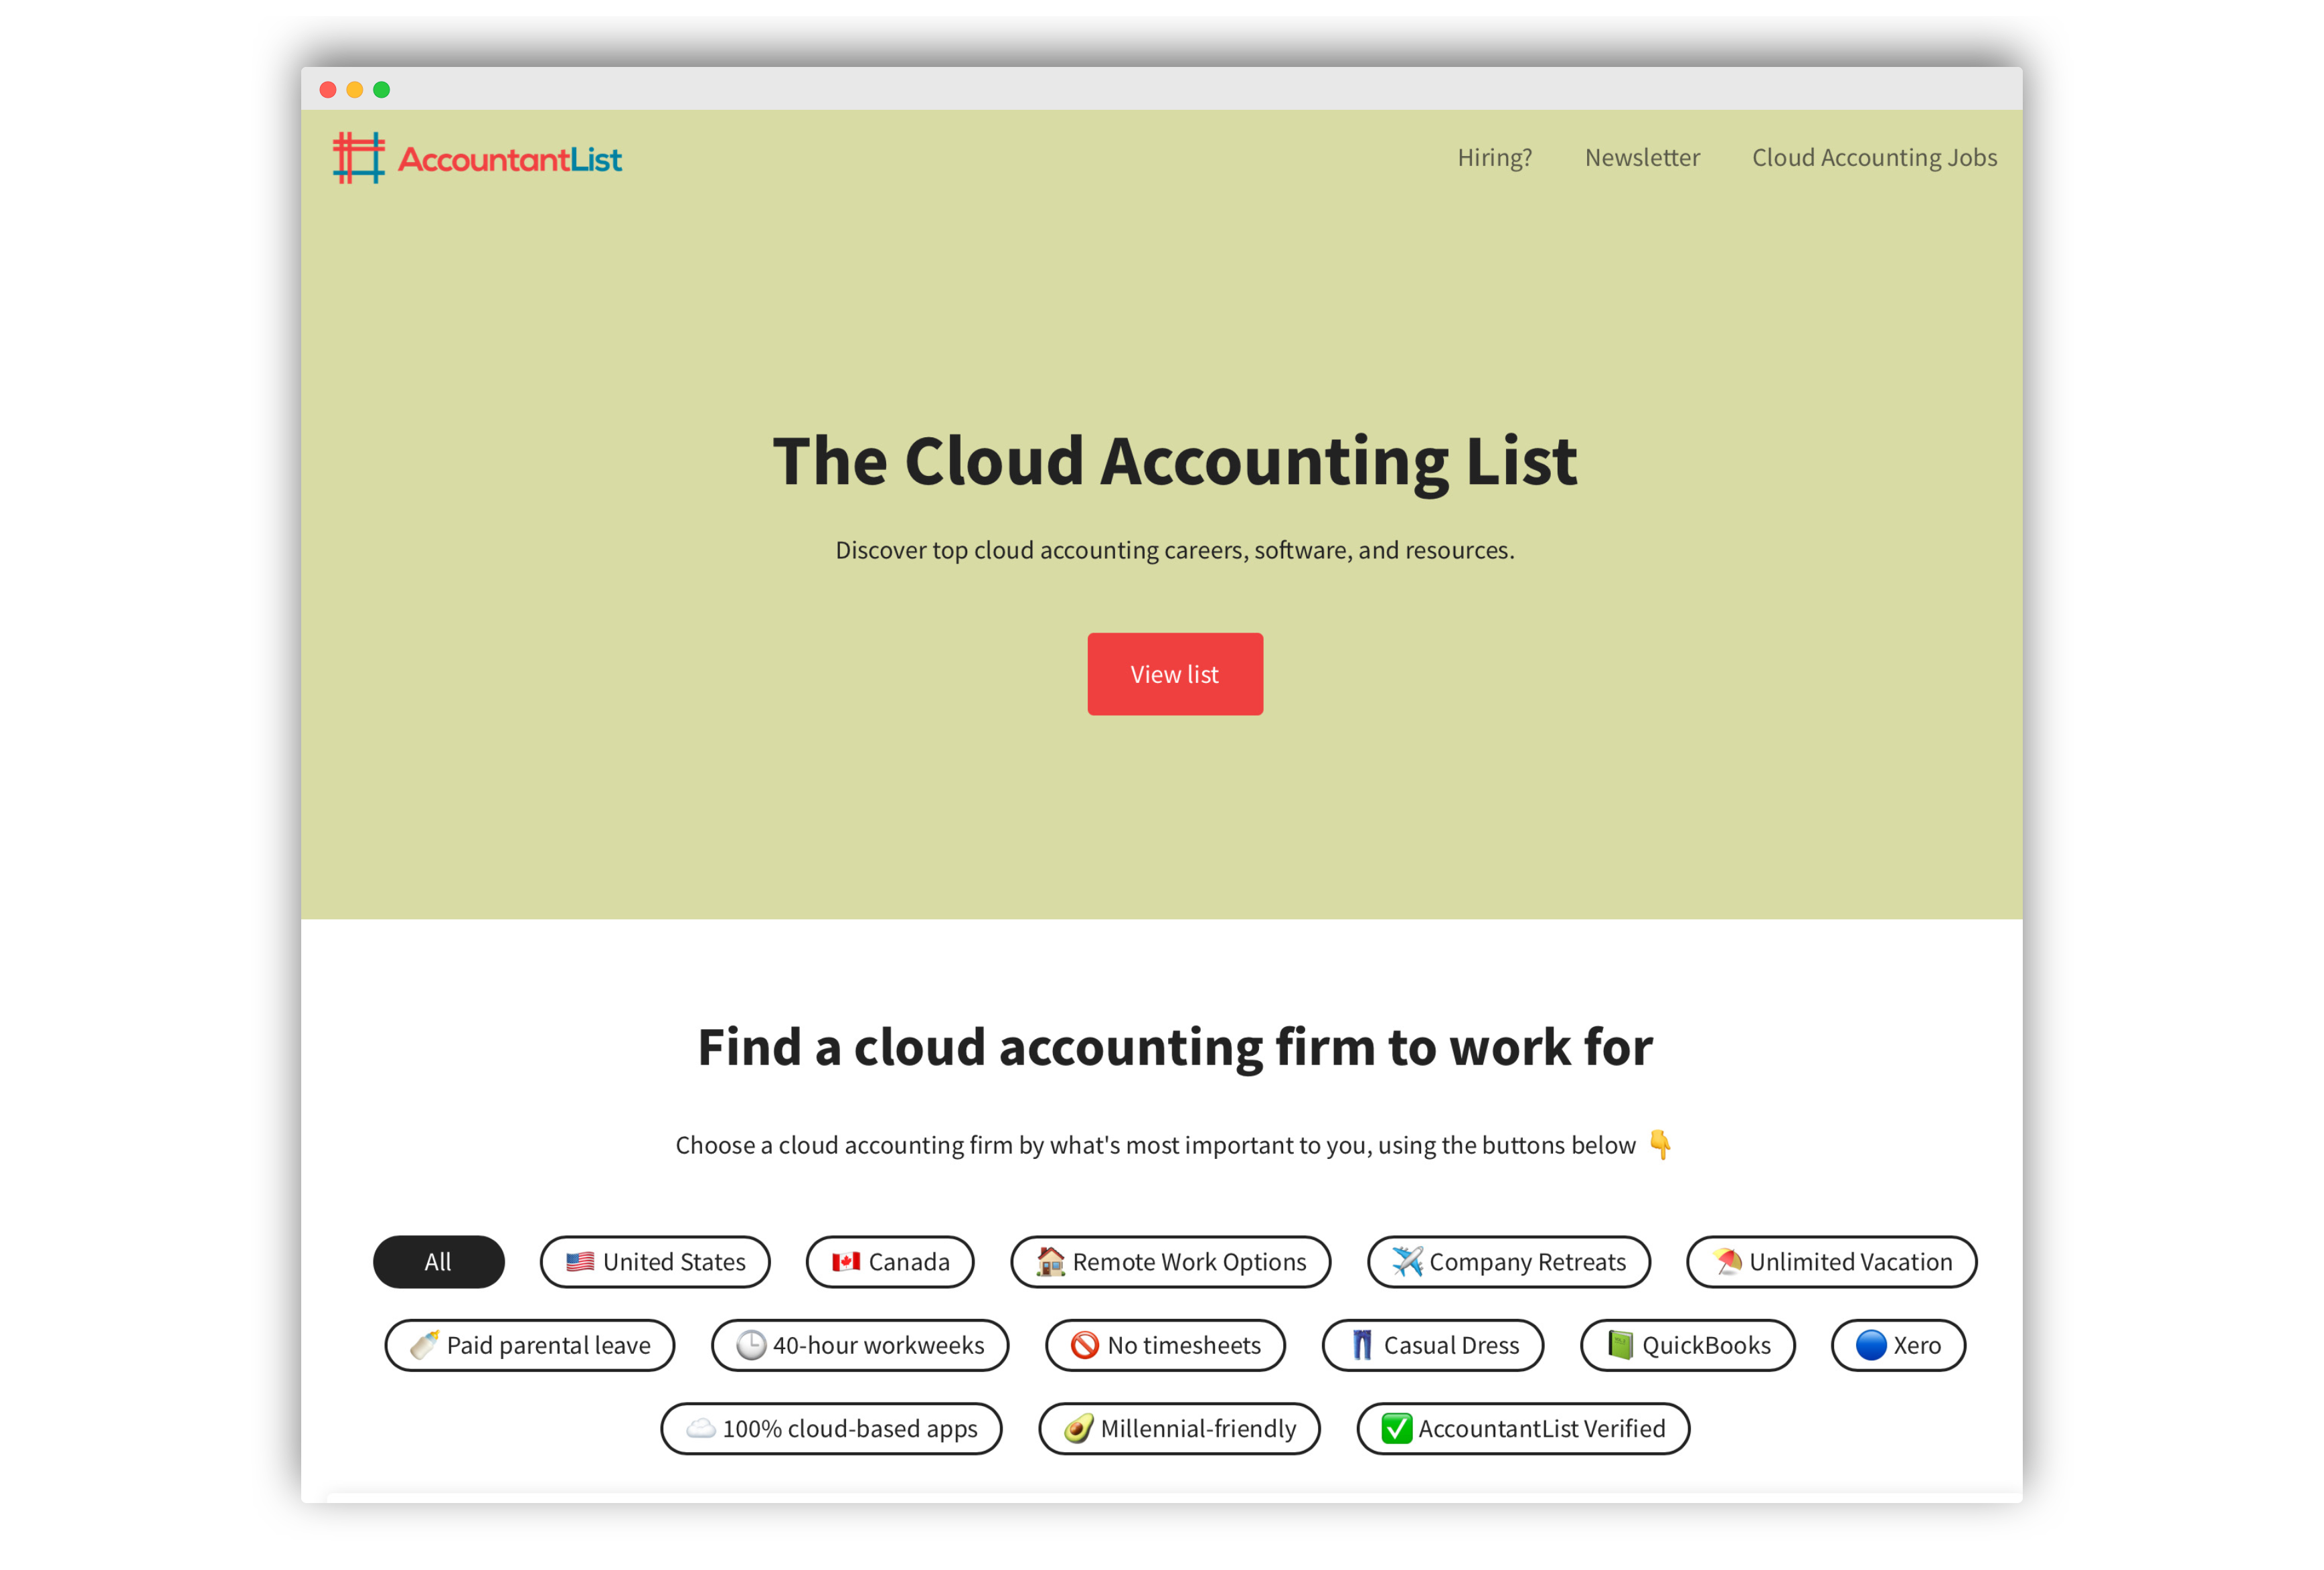 The Cloud Accounting List | AccountantList